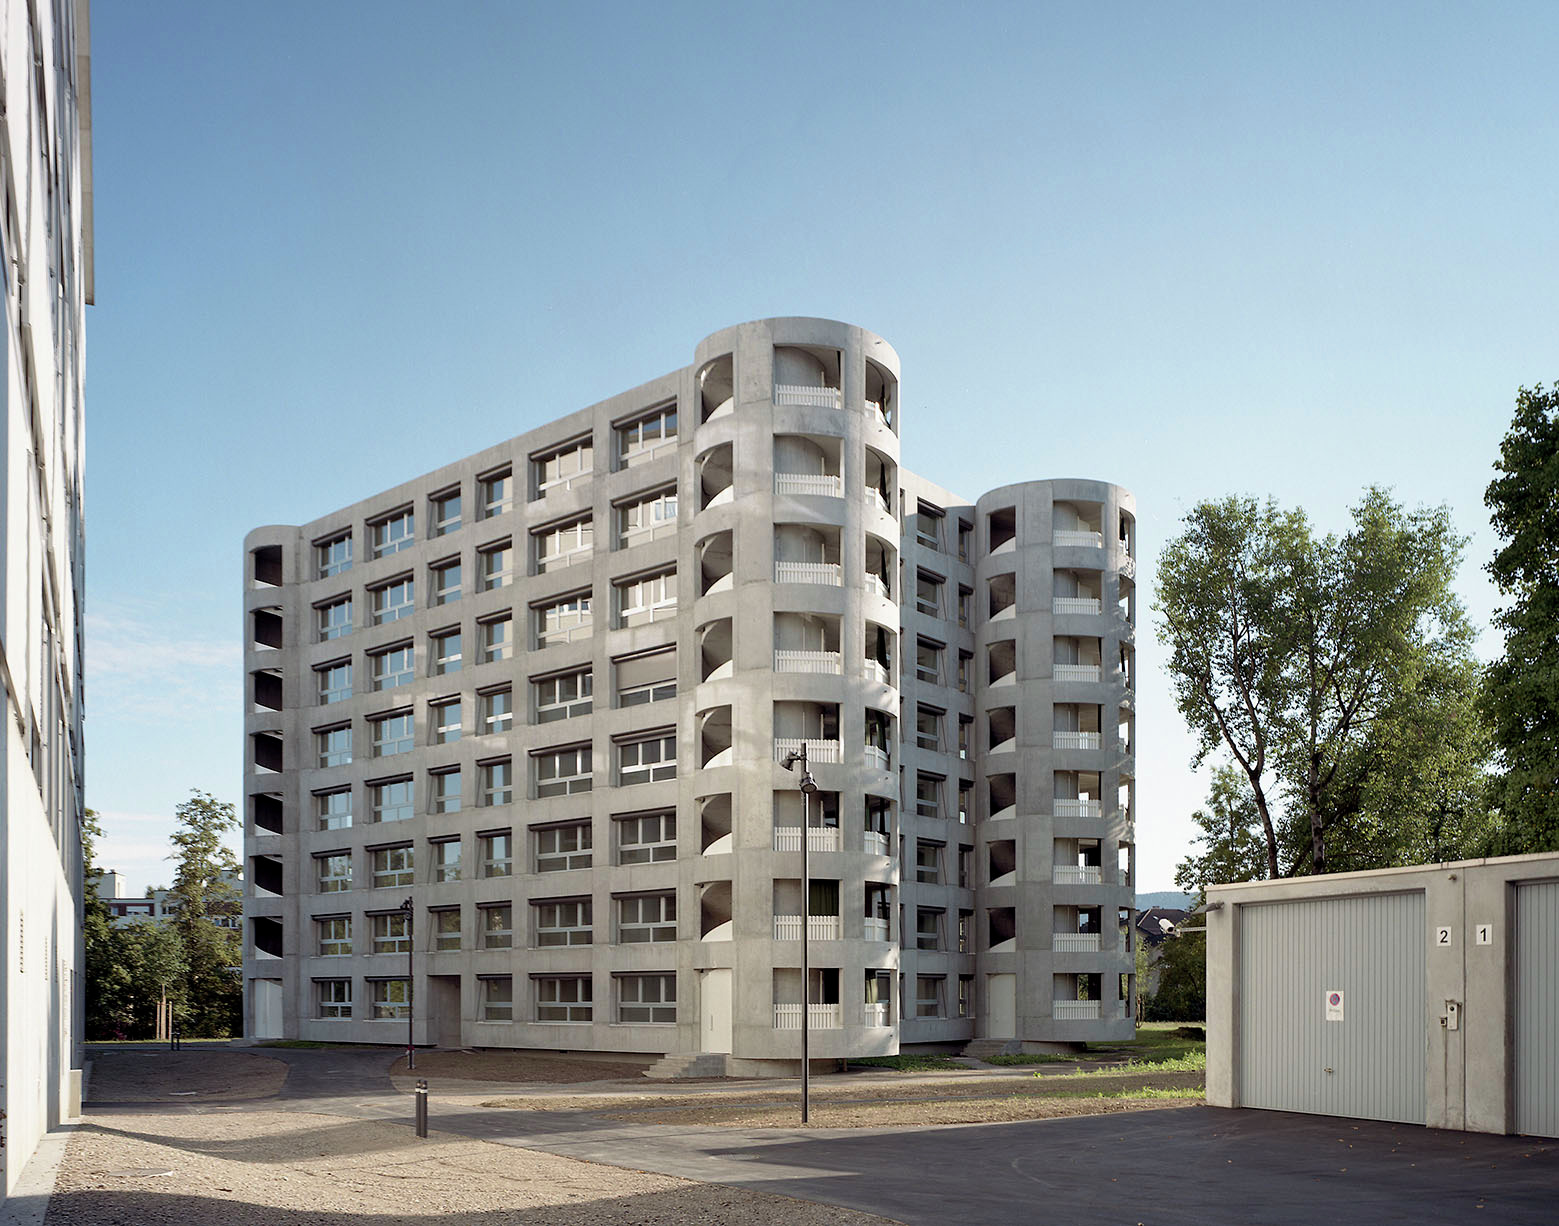 'We thought it was going to destroy us' … Herzog and De Meuron's Hamburg miracle